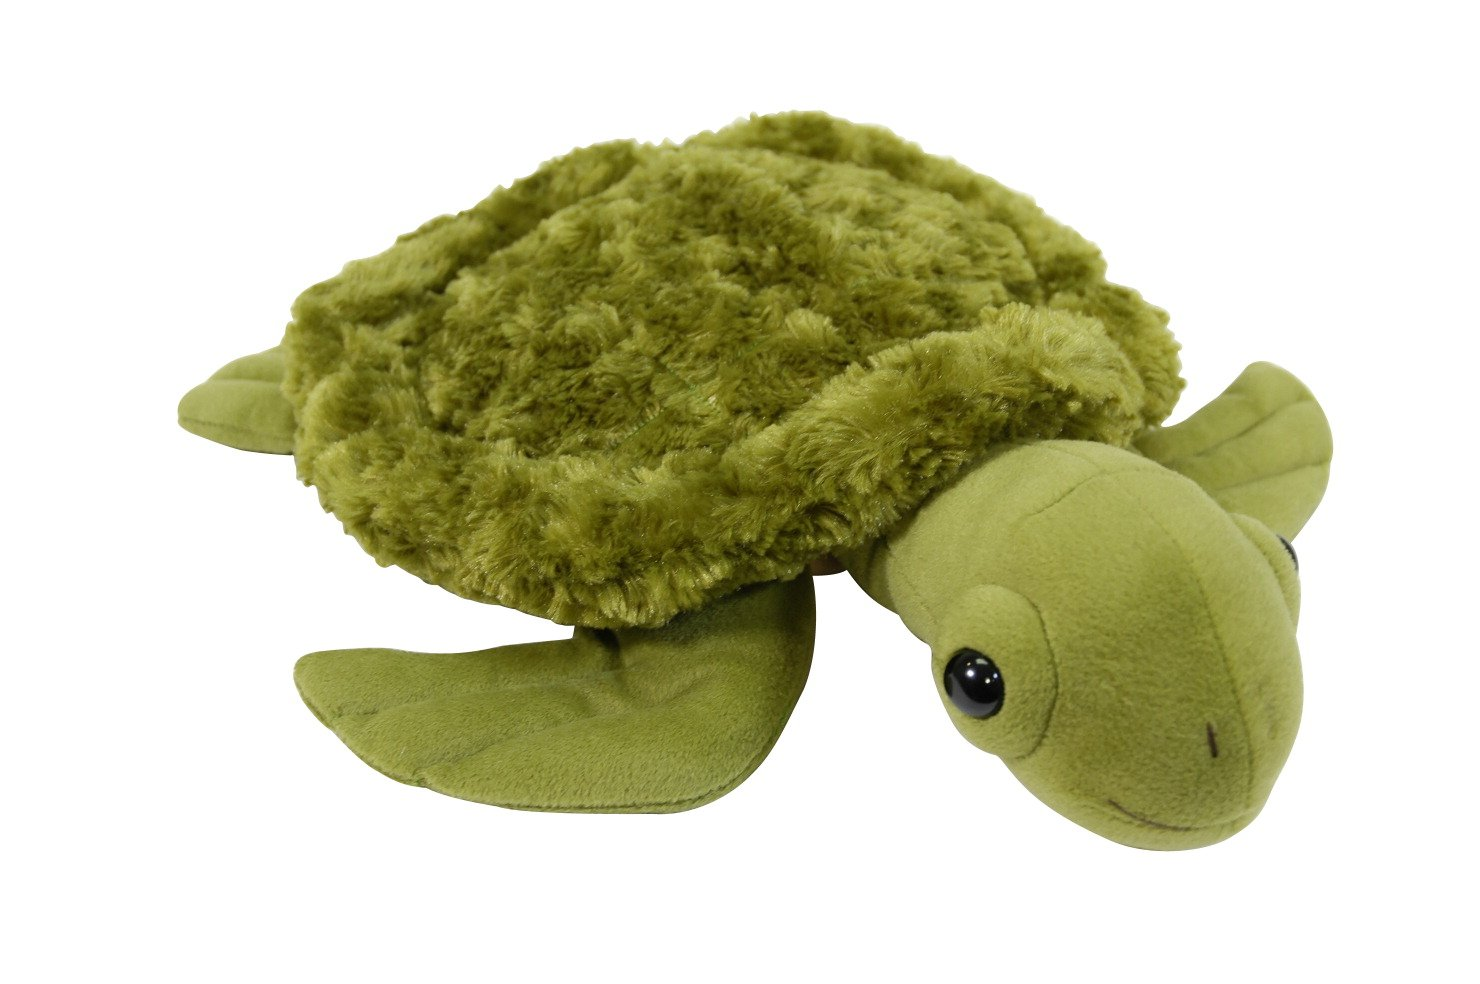 Abilitations Weighted Fuzzy Fin Turtle, 5 Pounds by Abilitations (Image #1)